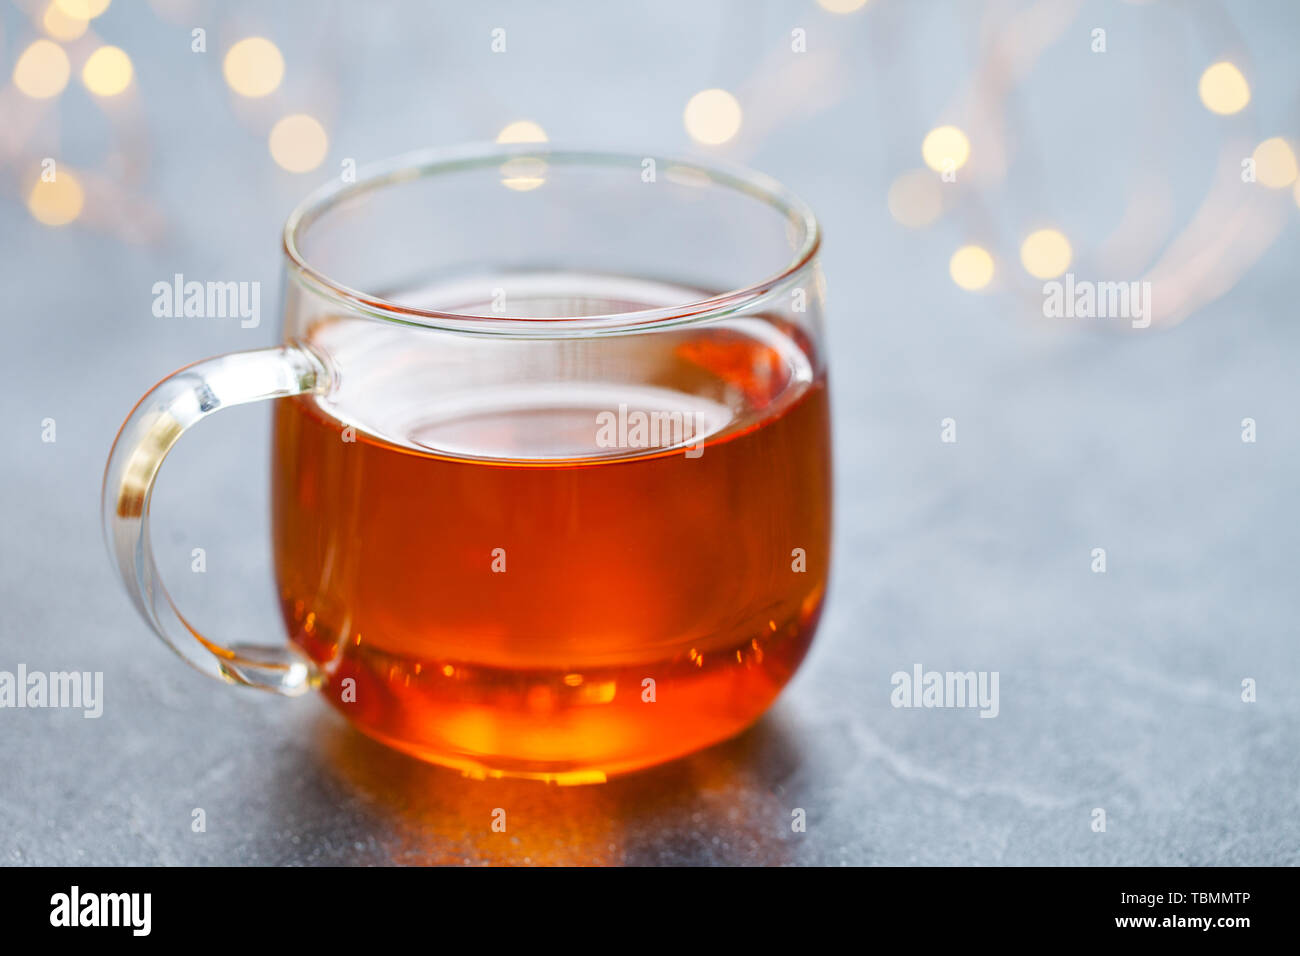 Tea in glass cup with light garland. Grey background. Copy space Stock Photo